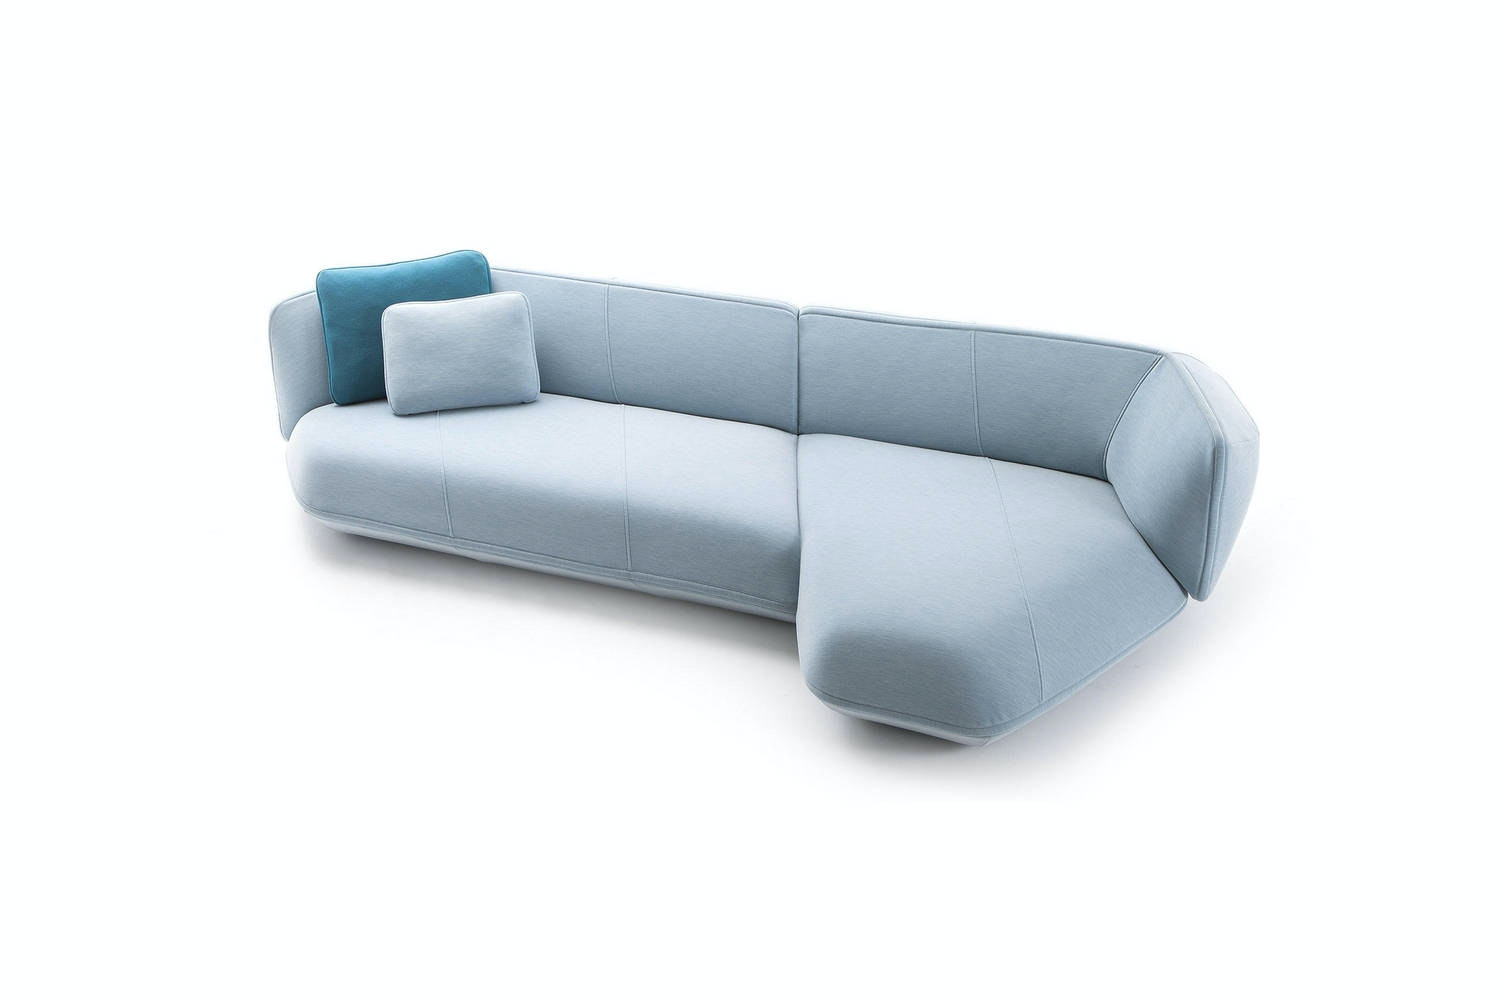 552 Floe Insel Sofa by Patricia Urquiola for Cassina